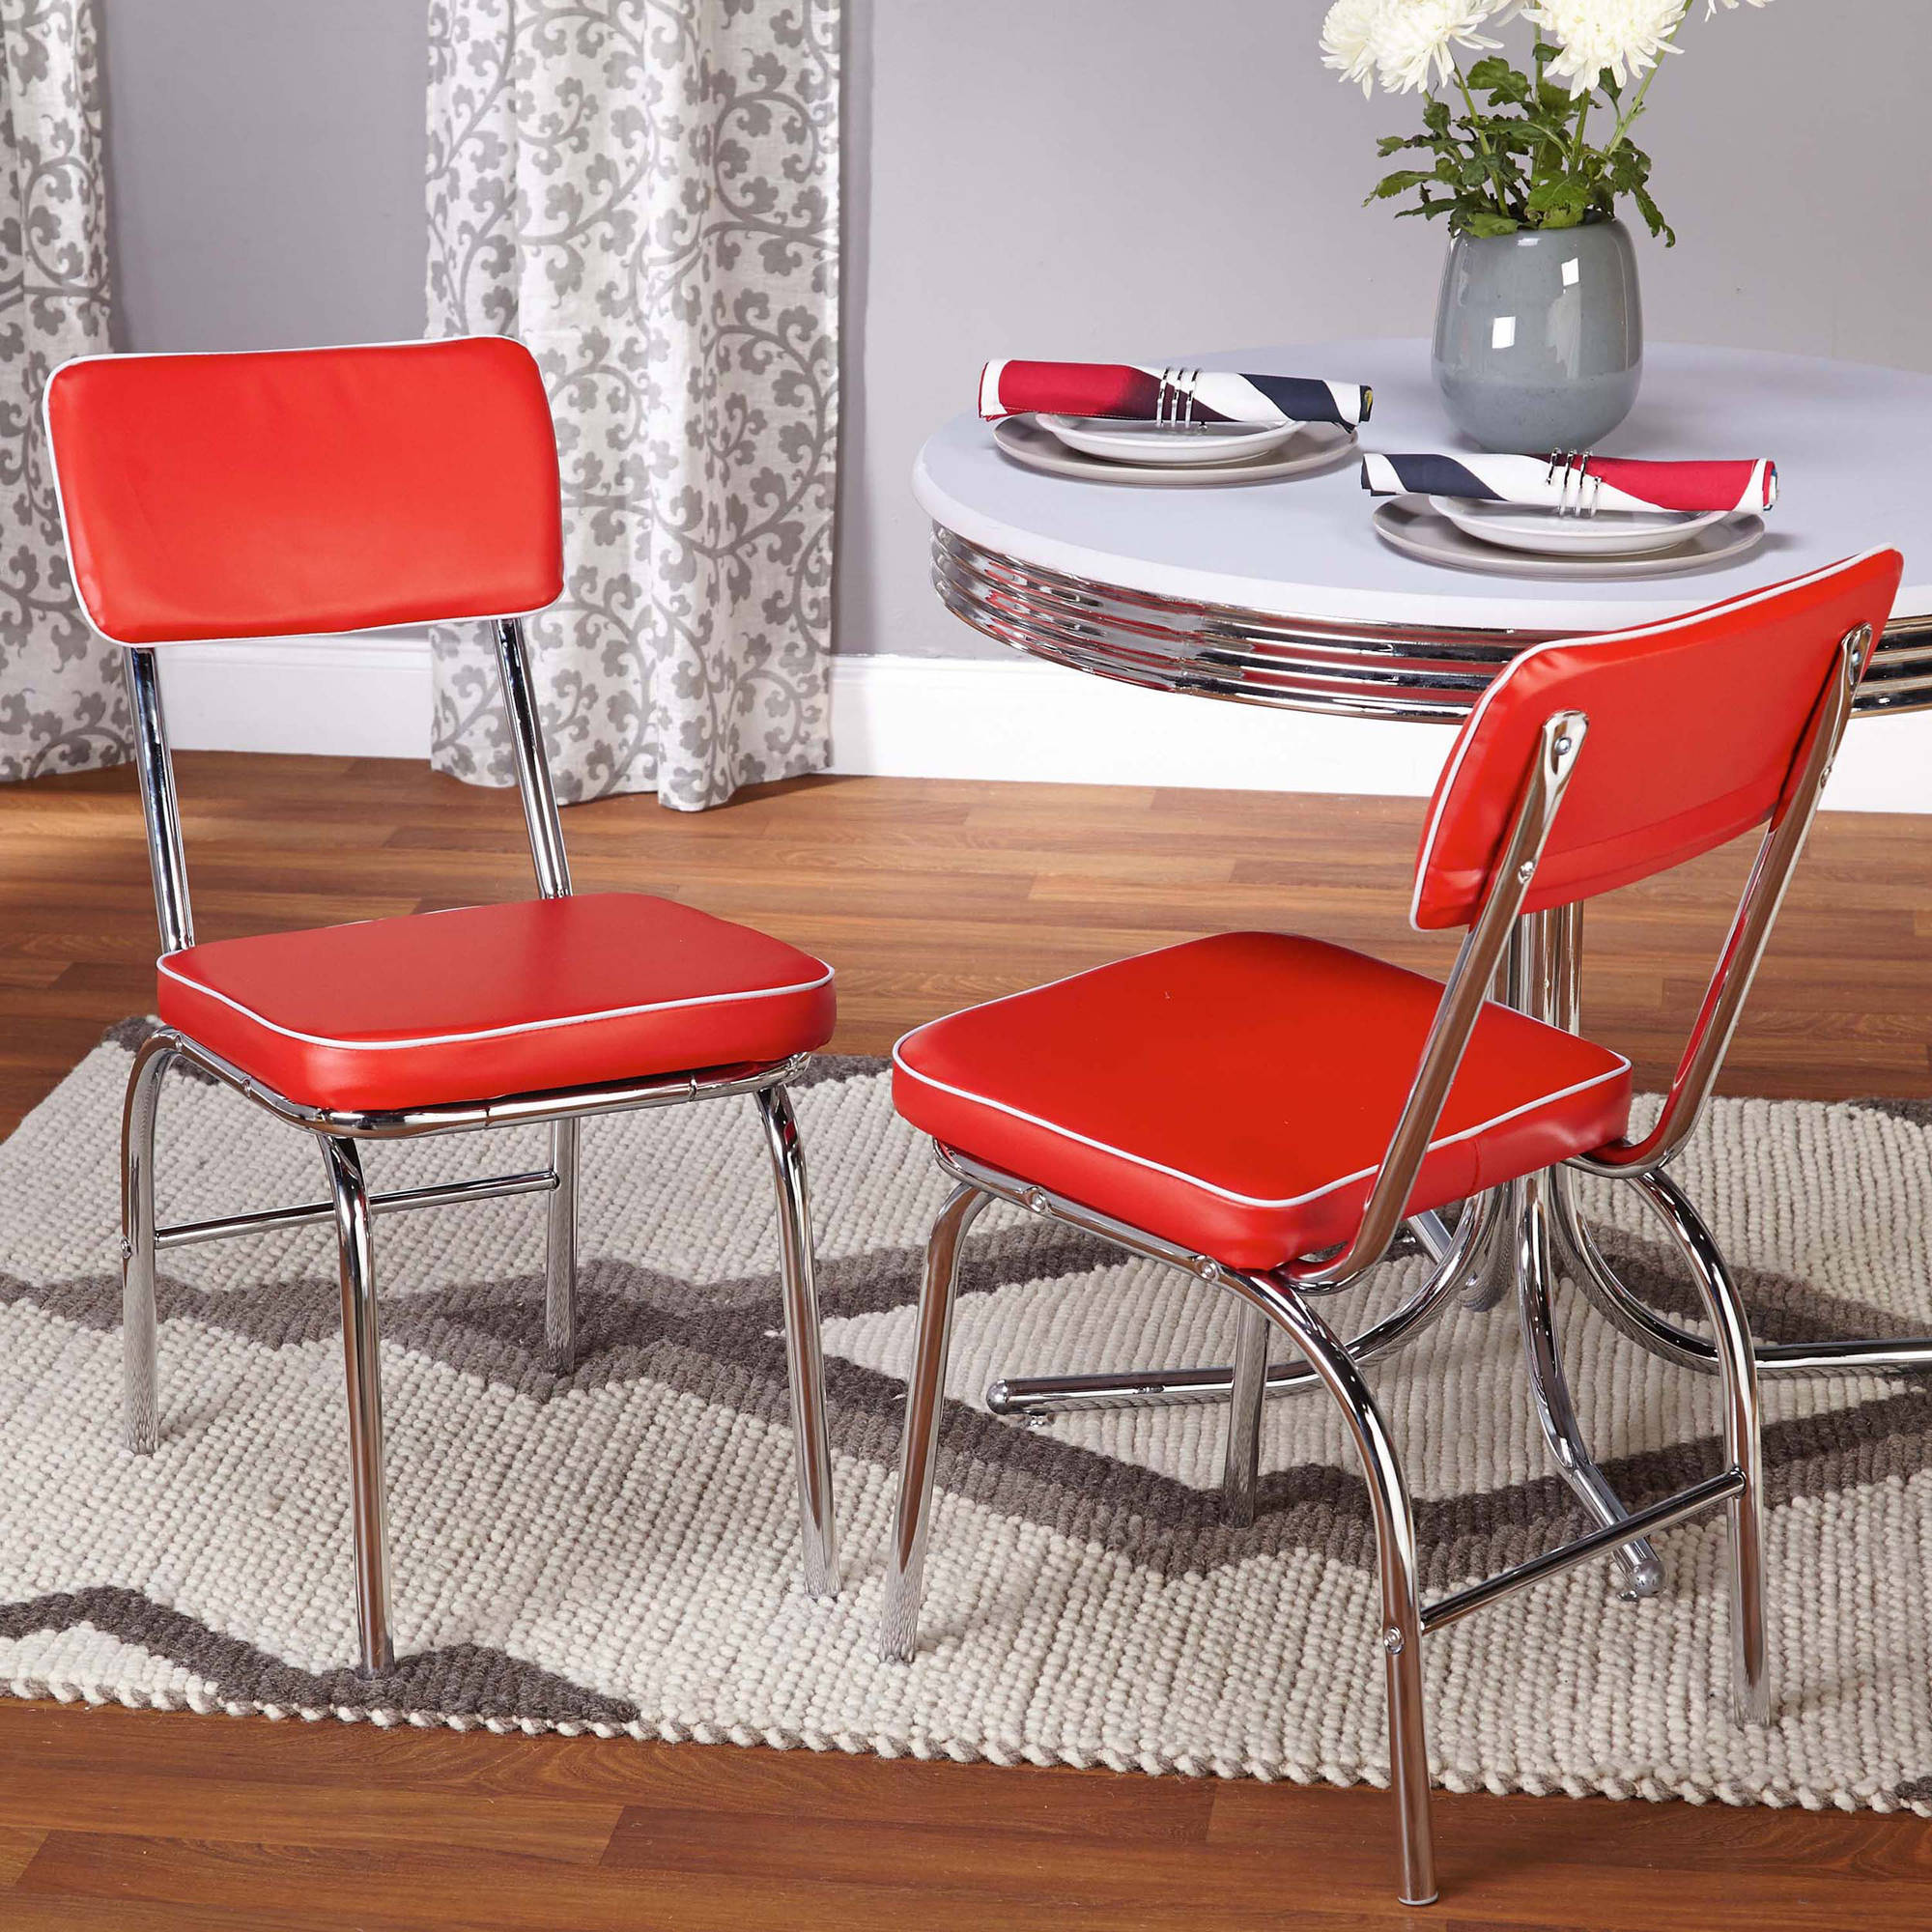 Table Chairs Walmart: Retro 5-Piece Dining Set Bundle, Red